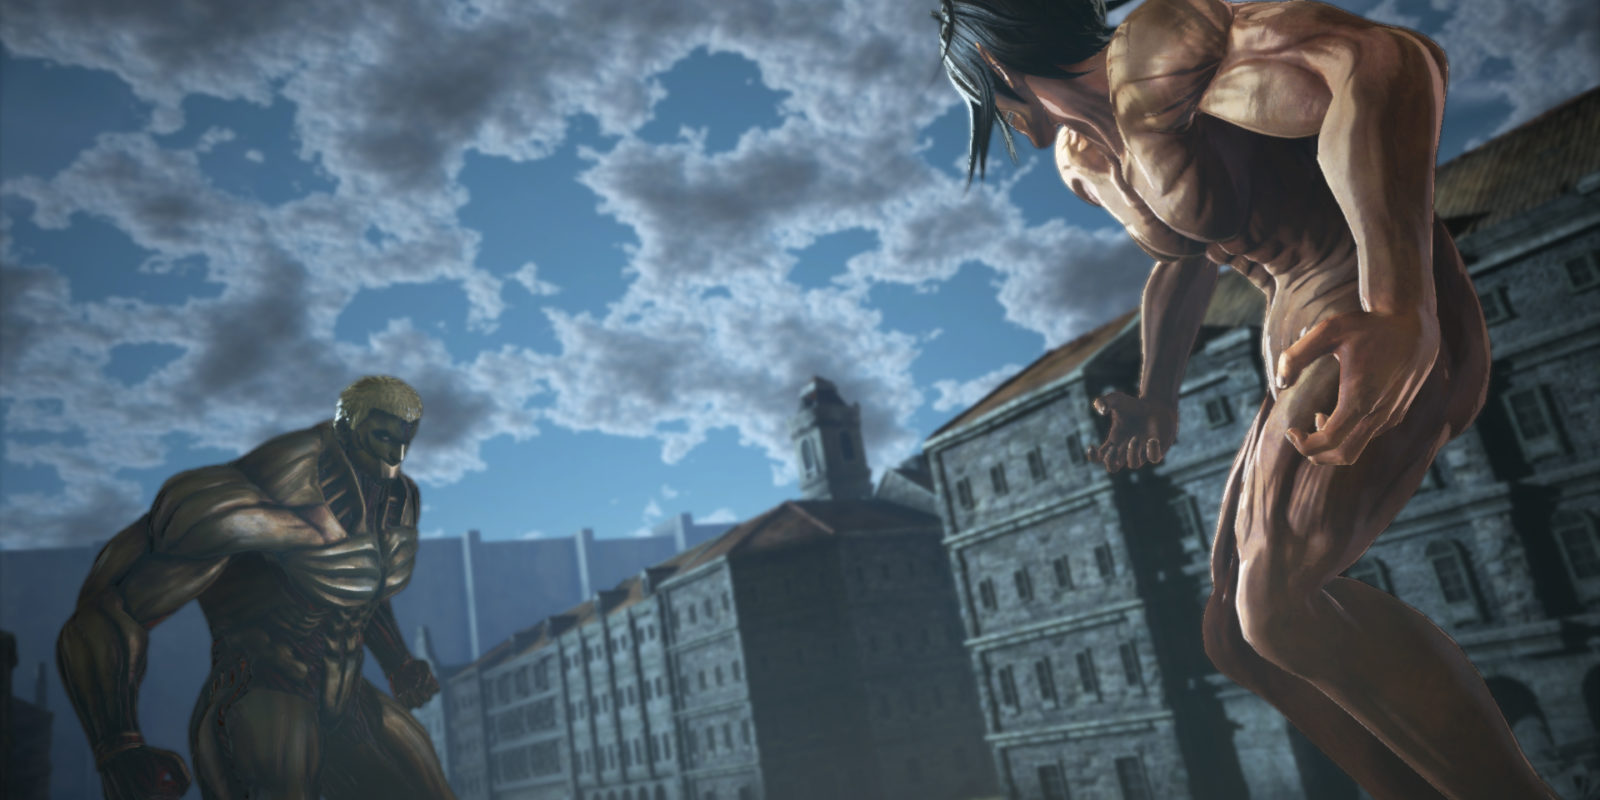 Attack On Titan Chapter 137 Magazine Cover Release, Spoilers, Release Date And Where To Read ...